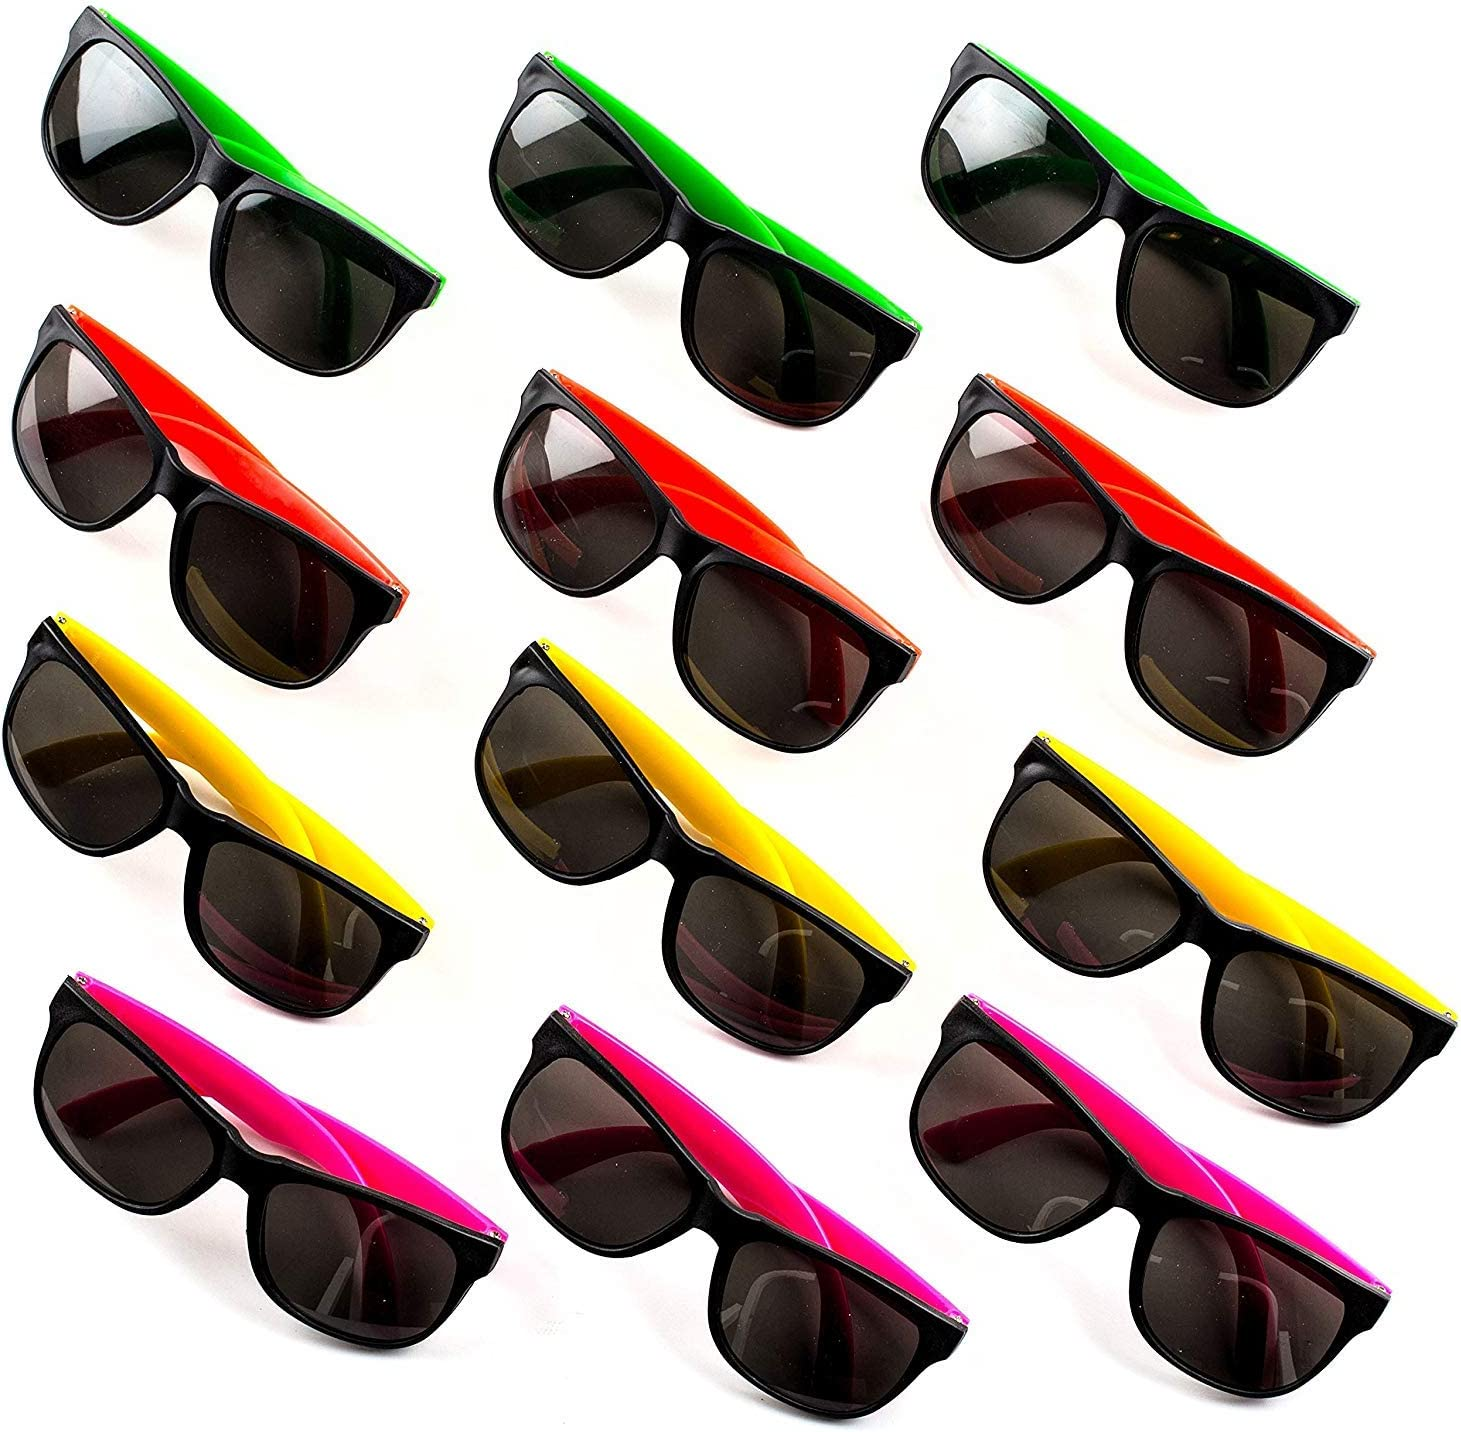 24 Neon Sunglasses For Kids and Adults Bulk Party Favors for Kid Goody Bag Fillers Stocking Stuffers Bulk Party Pack of 2 Dozen by Neliblu